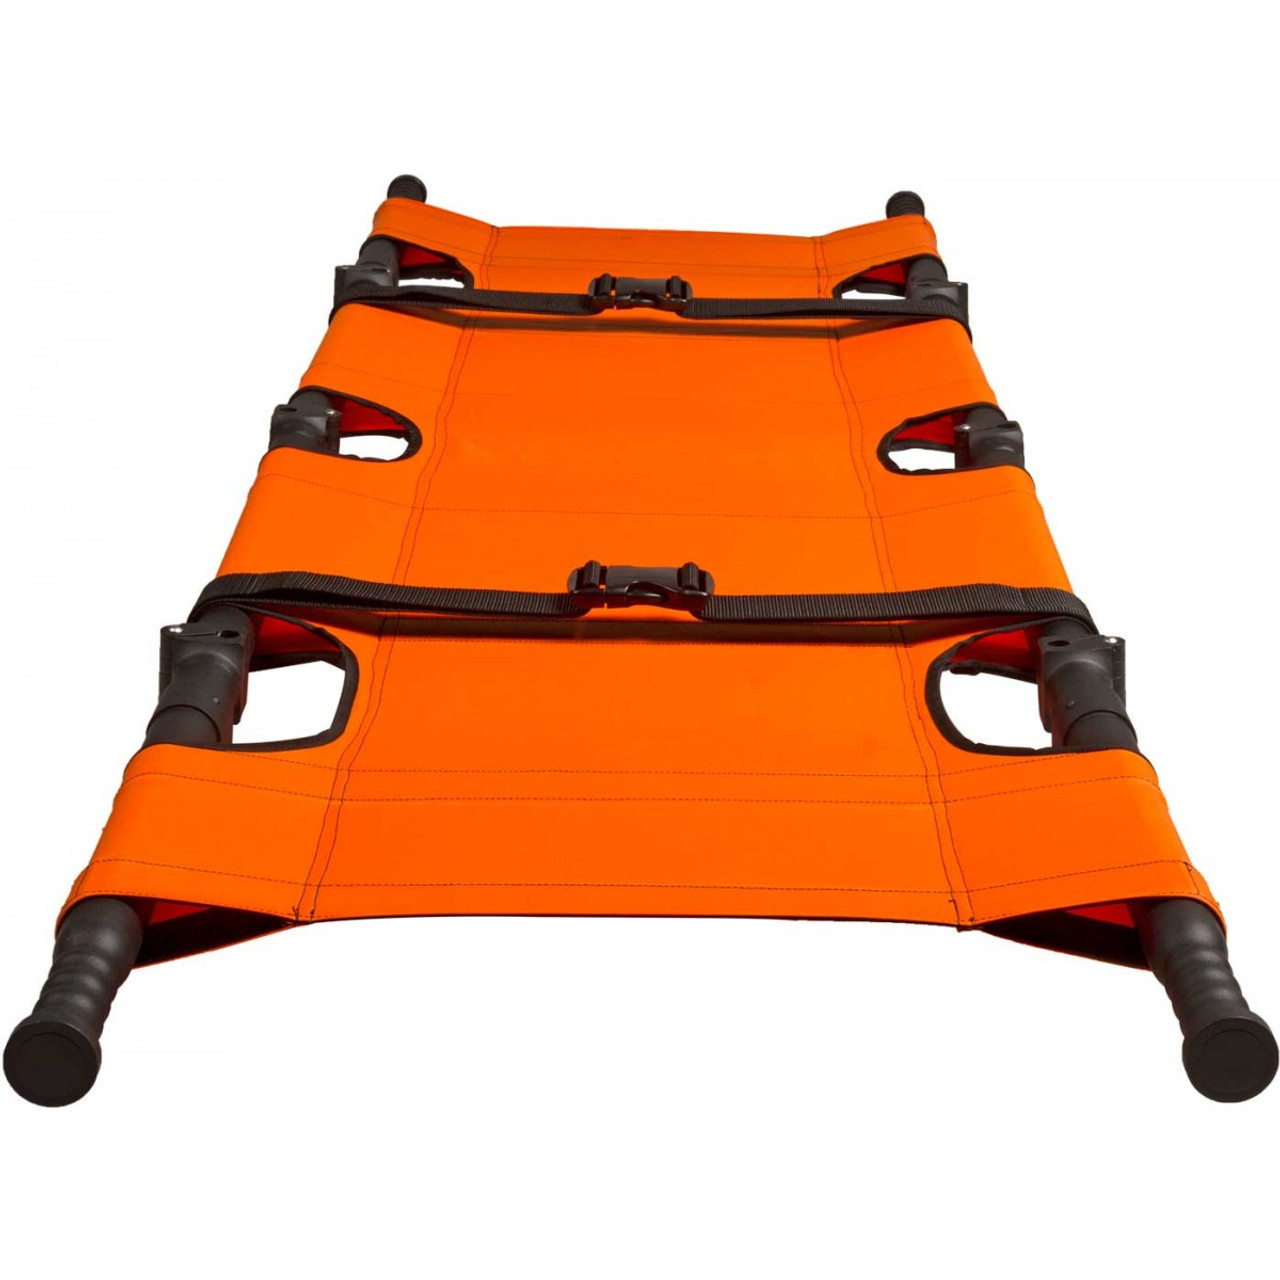 MedEVAC Litter, Orange